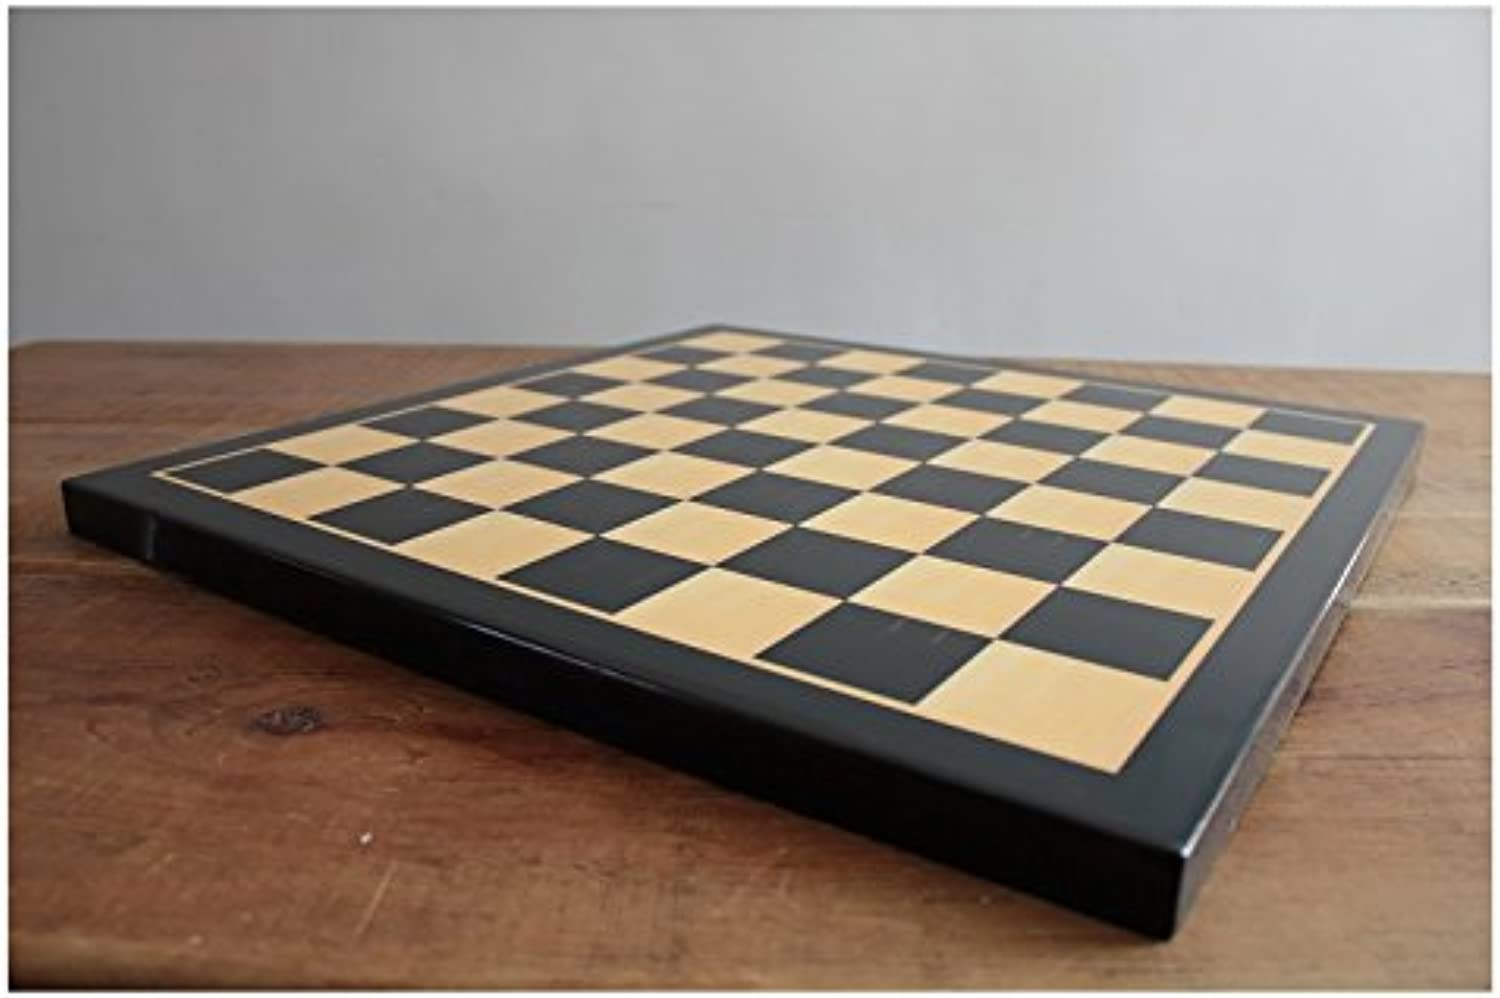 Ebony Board Squares 21 x 21 inch with 2.25 inch Squares